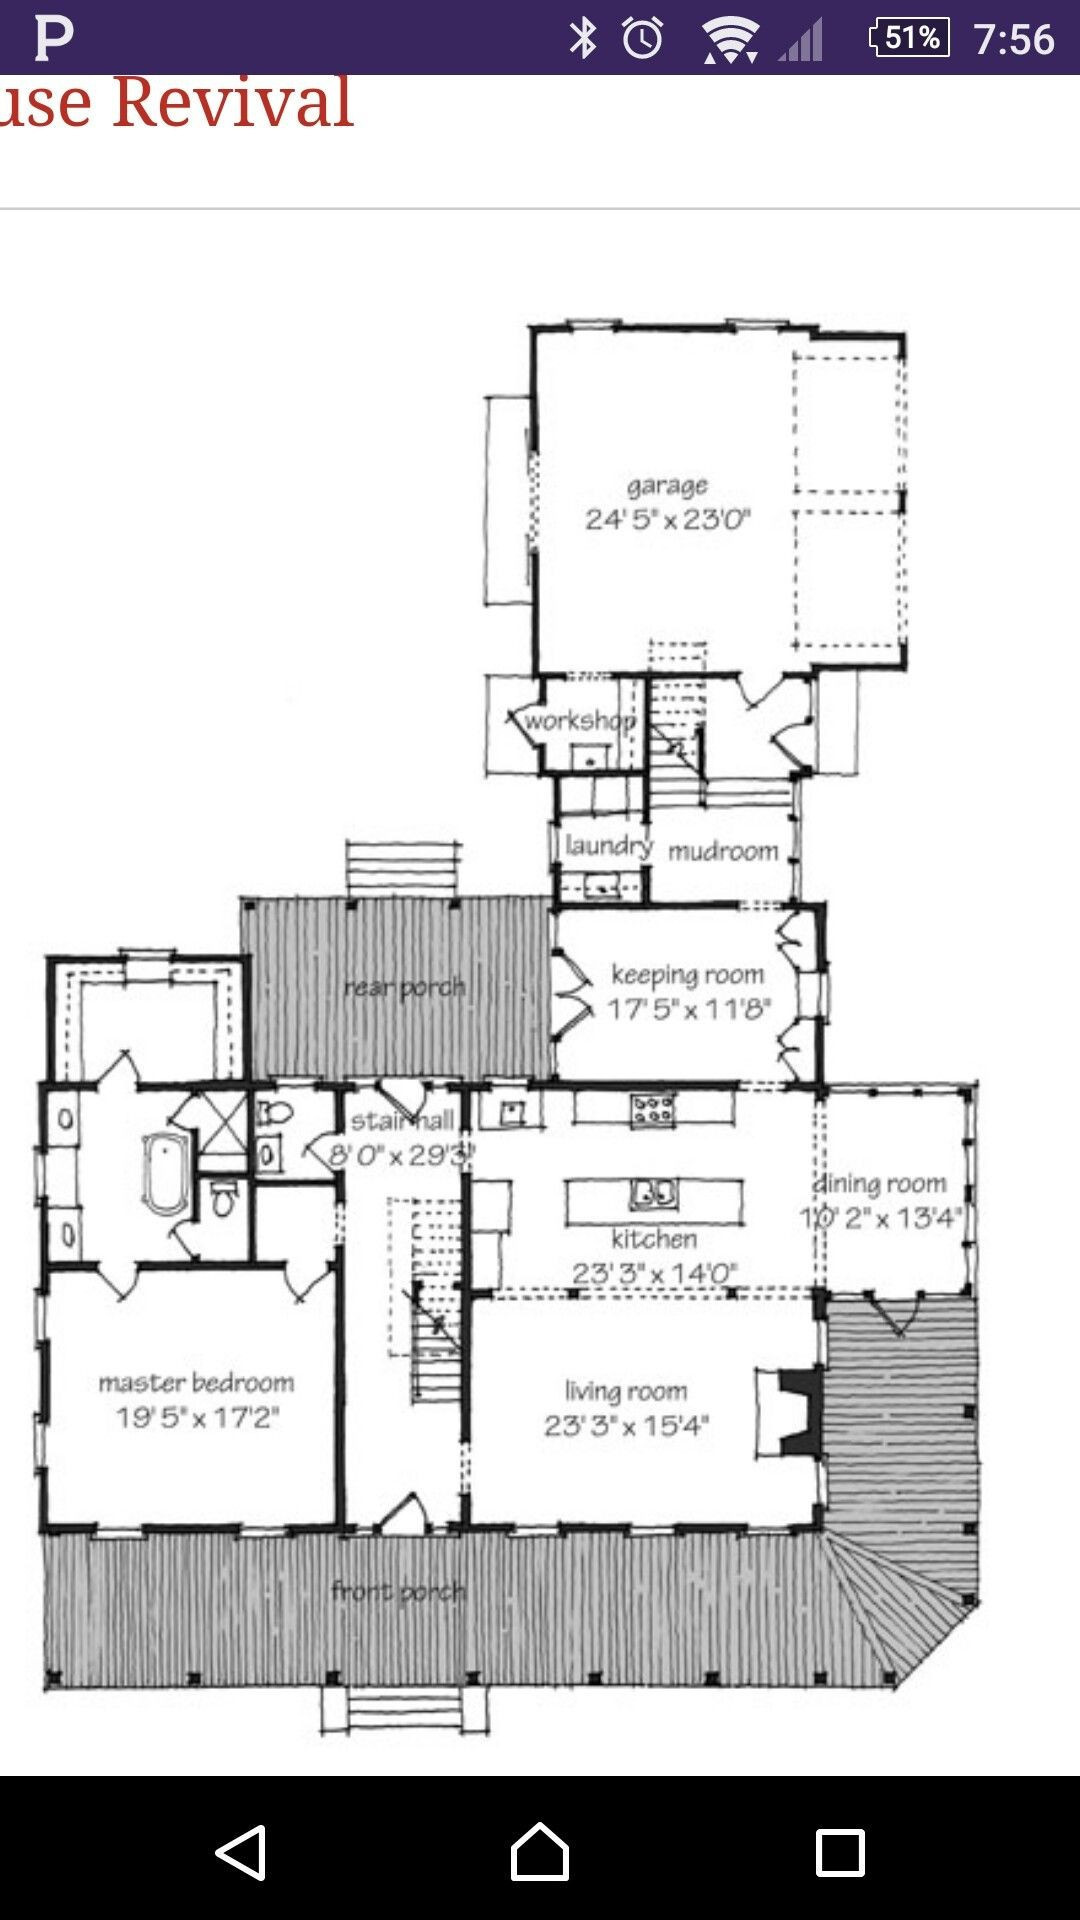 2 ft tall vases of house plans with big living room luxury living room vases wholesale intended for house plans with big living room beautiful southern house plan beautiful plantation homes floor plans new